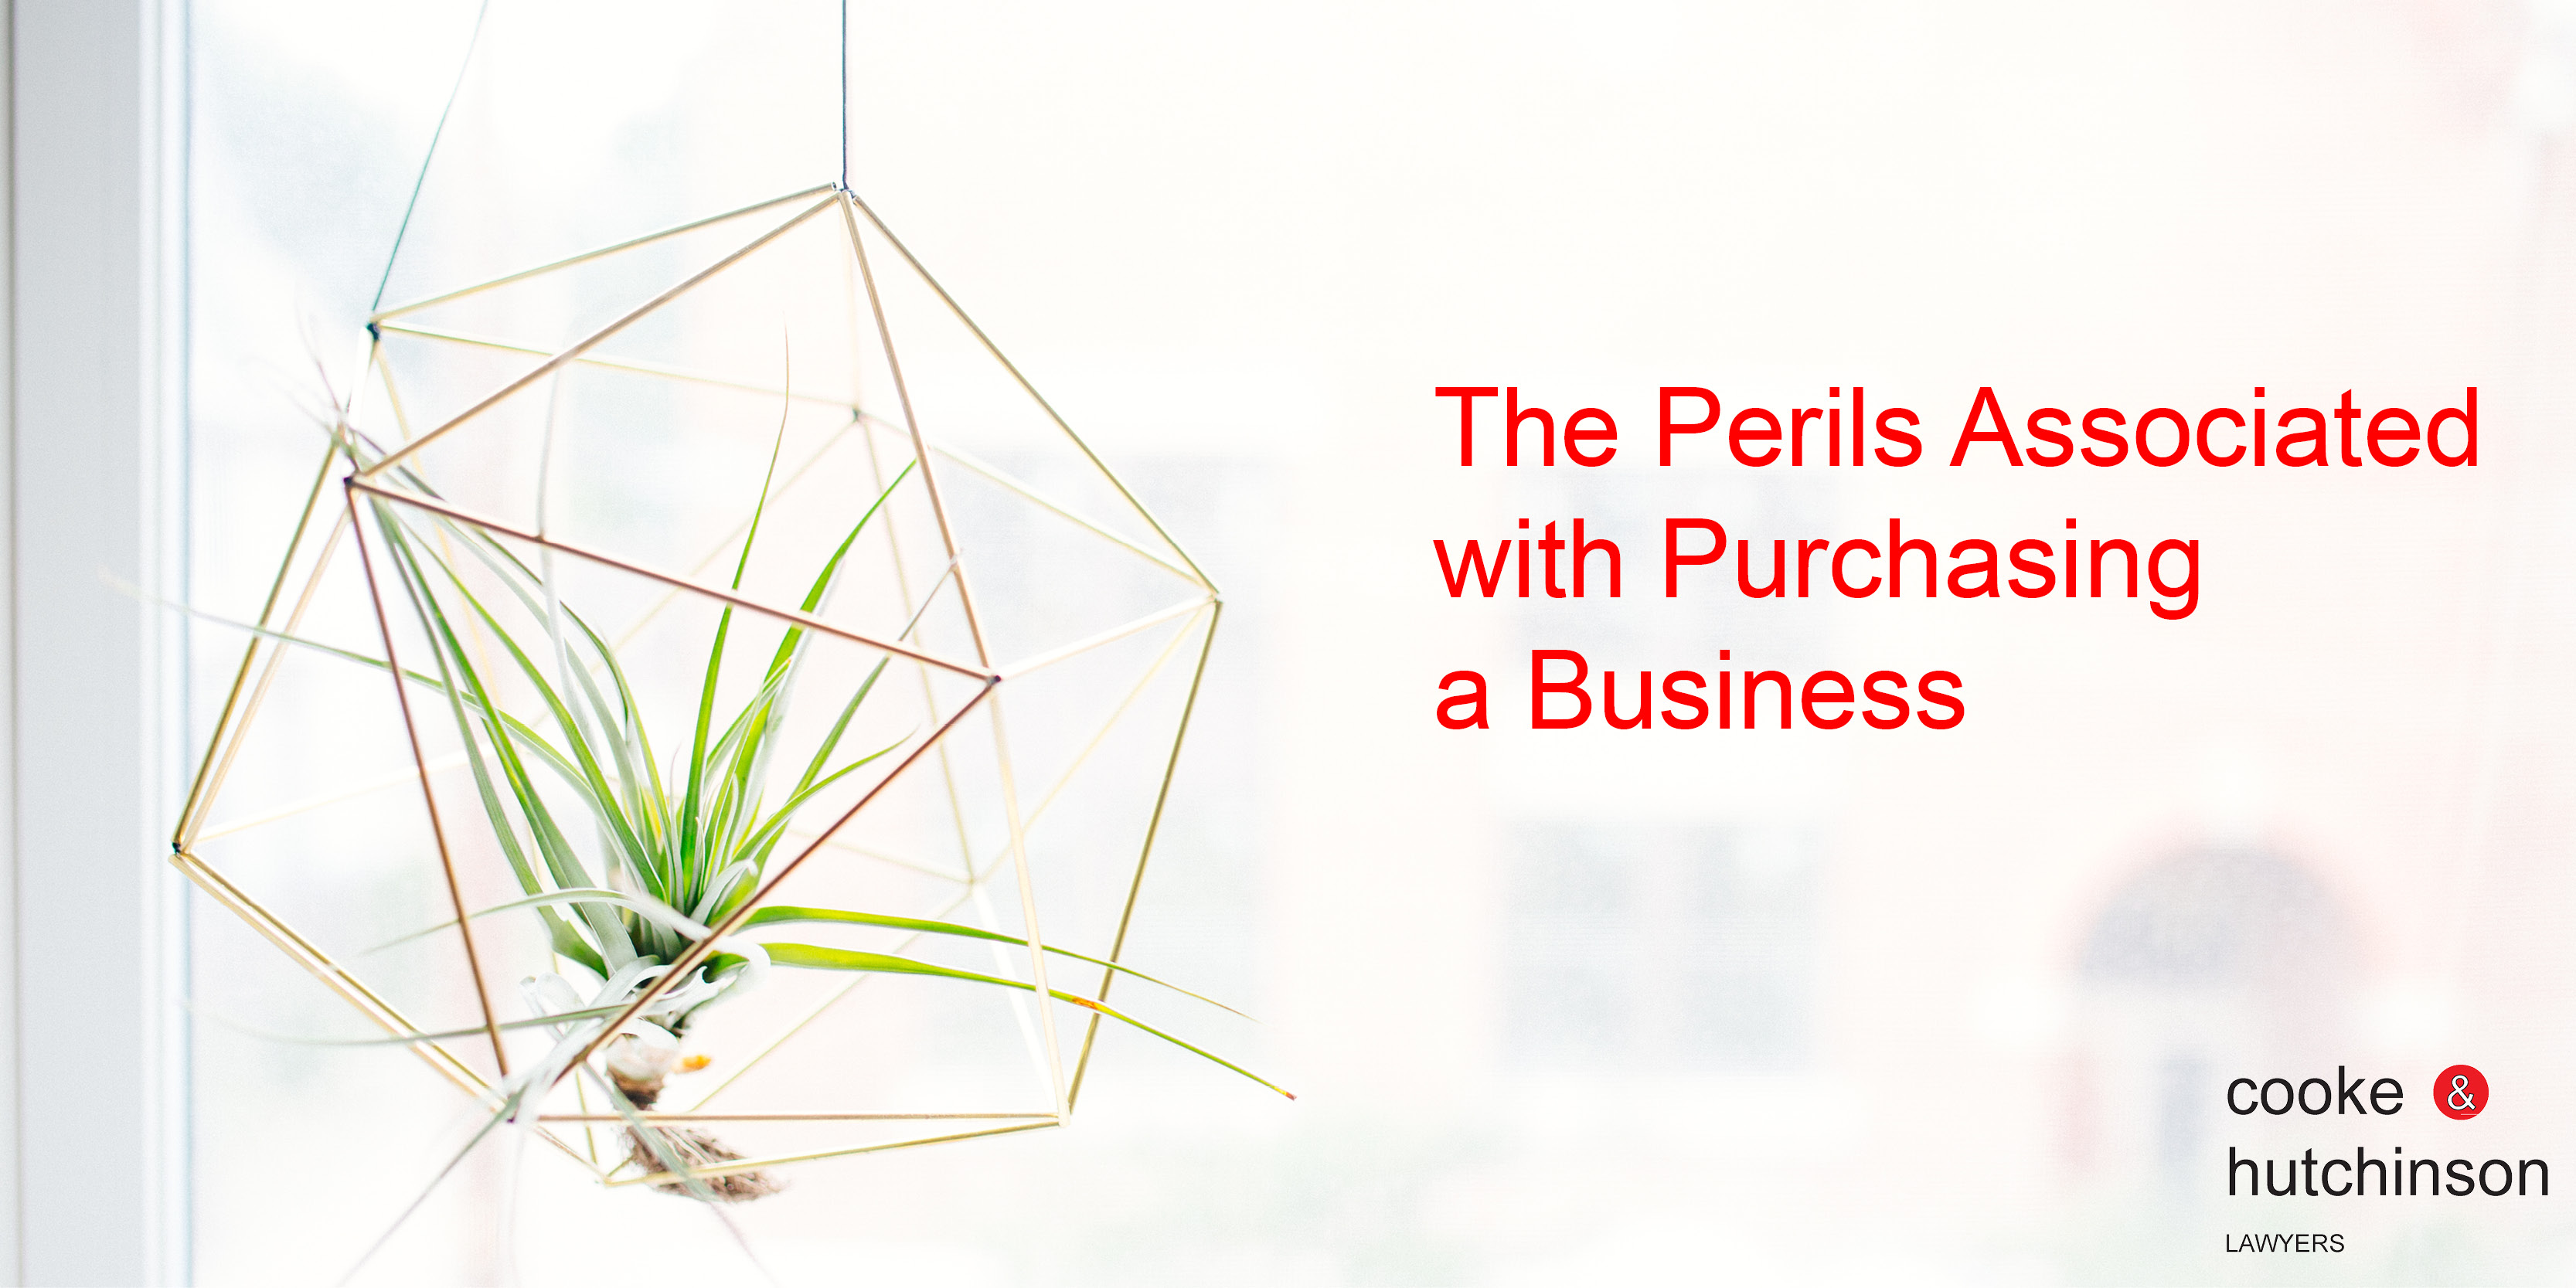 Perils Associated with Purchasing a Business